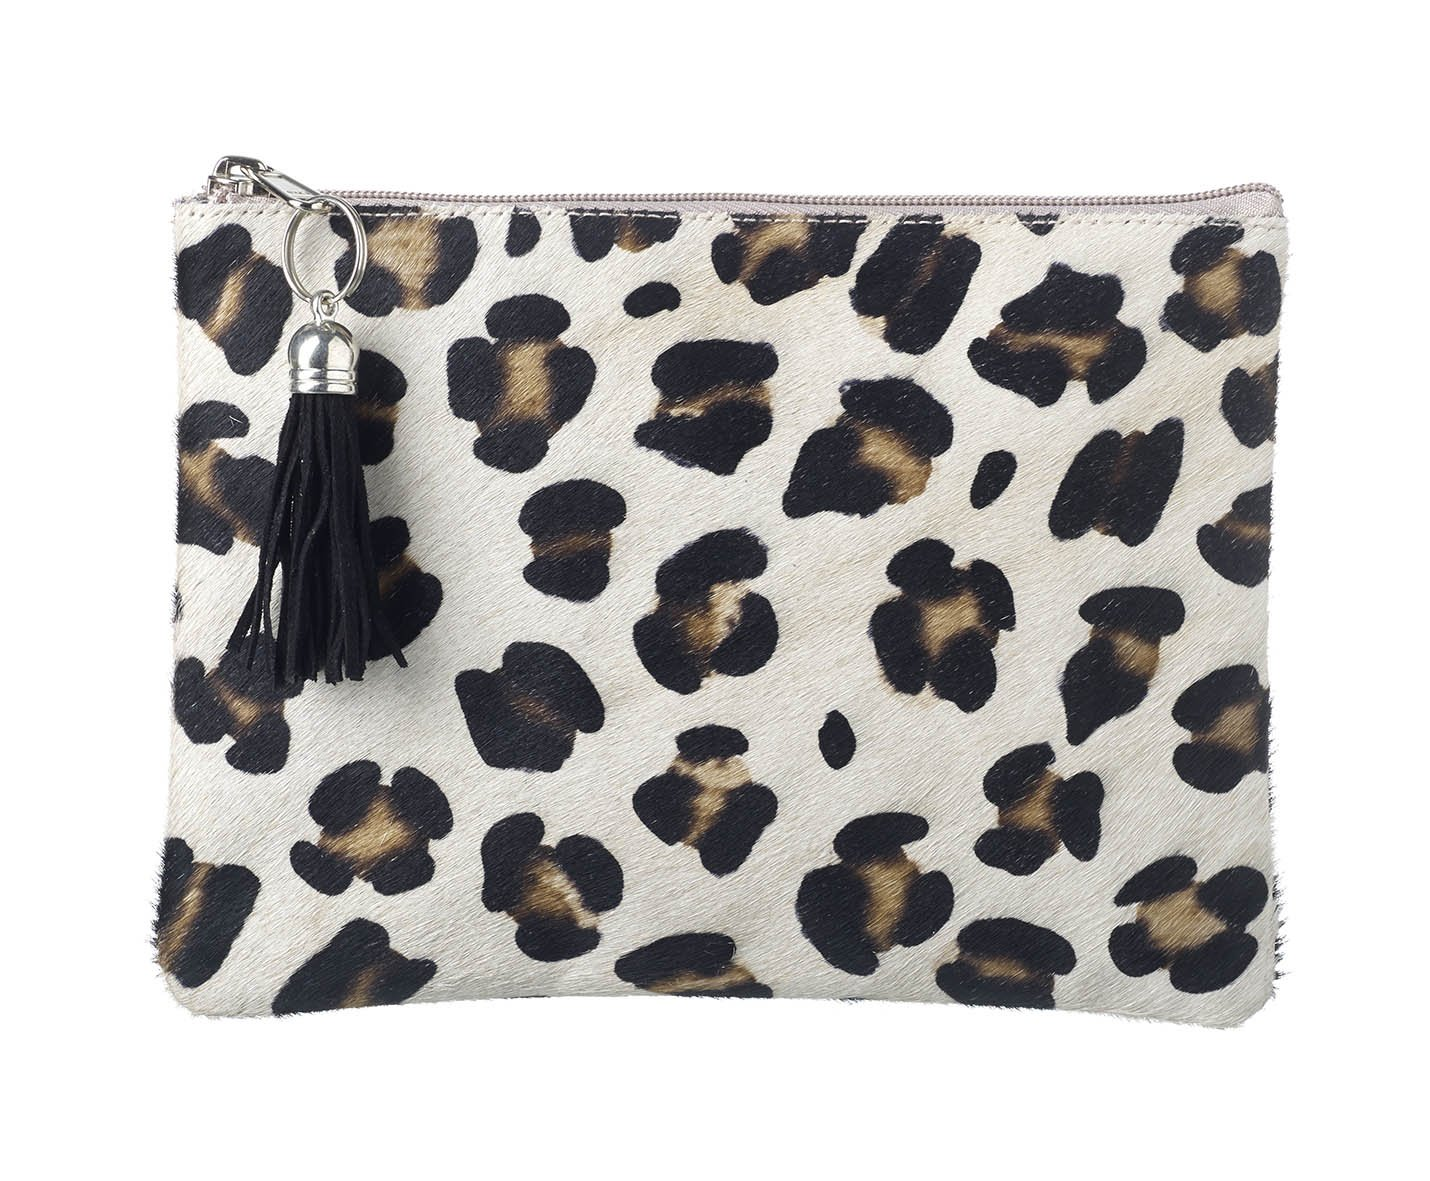 Wild Animal Print Goat Hide Clutch Bags